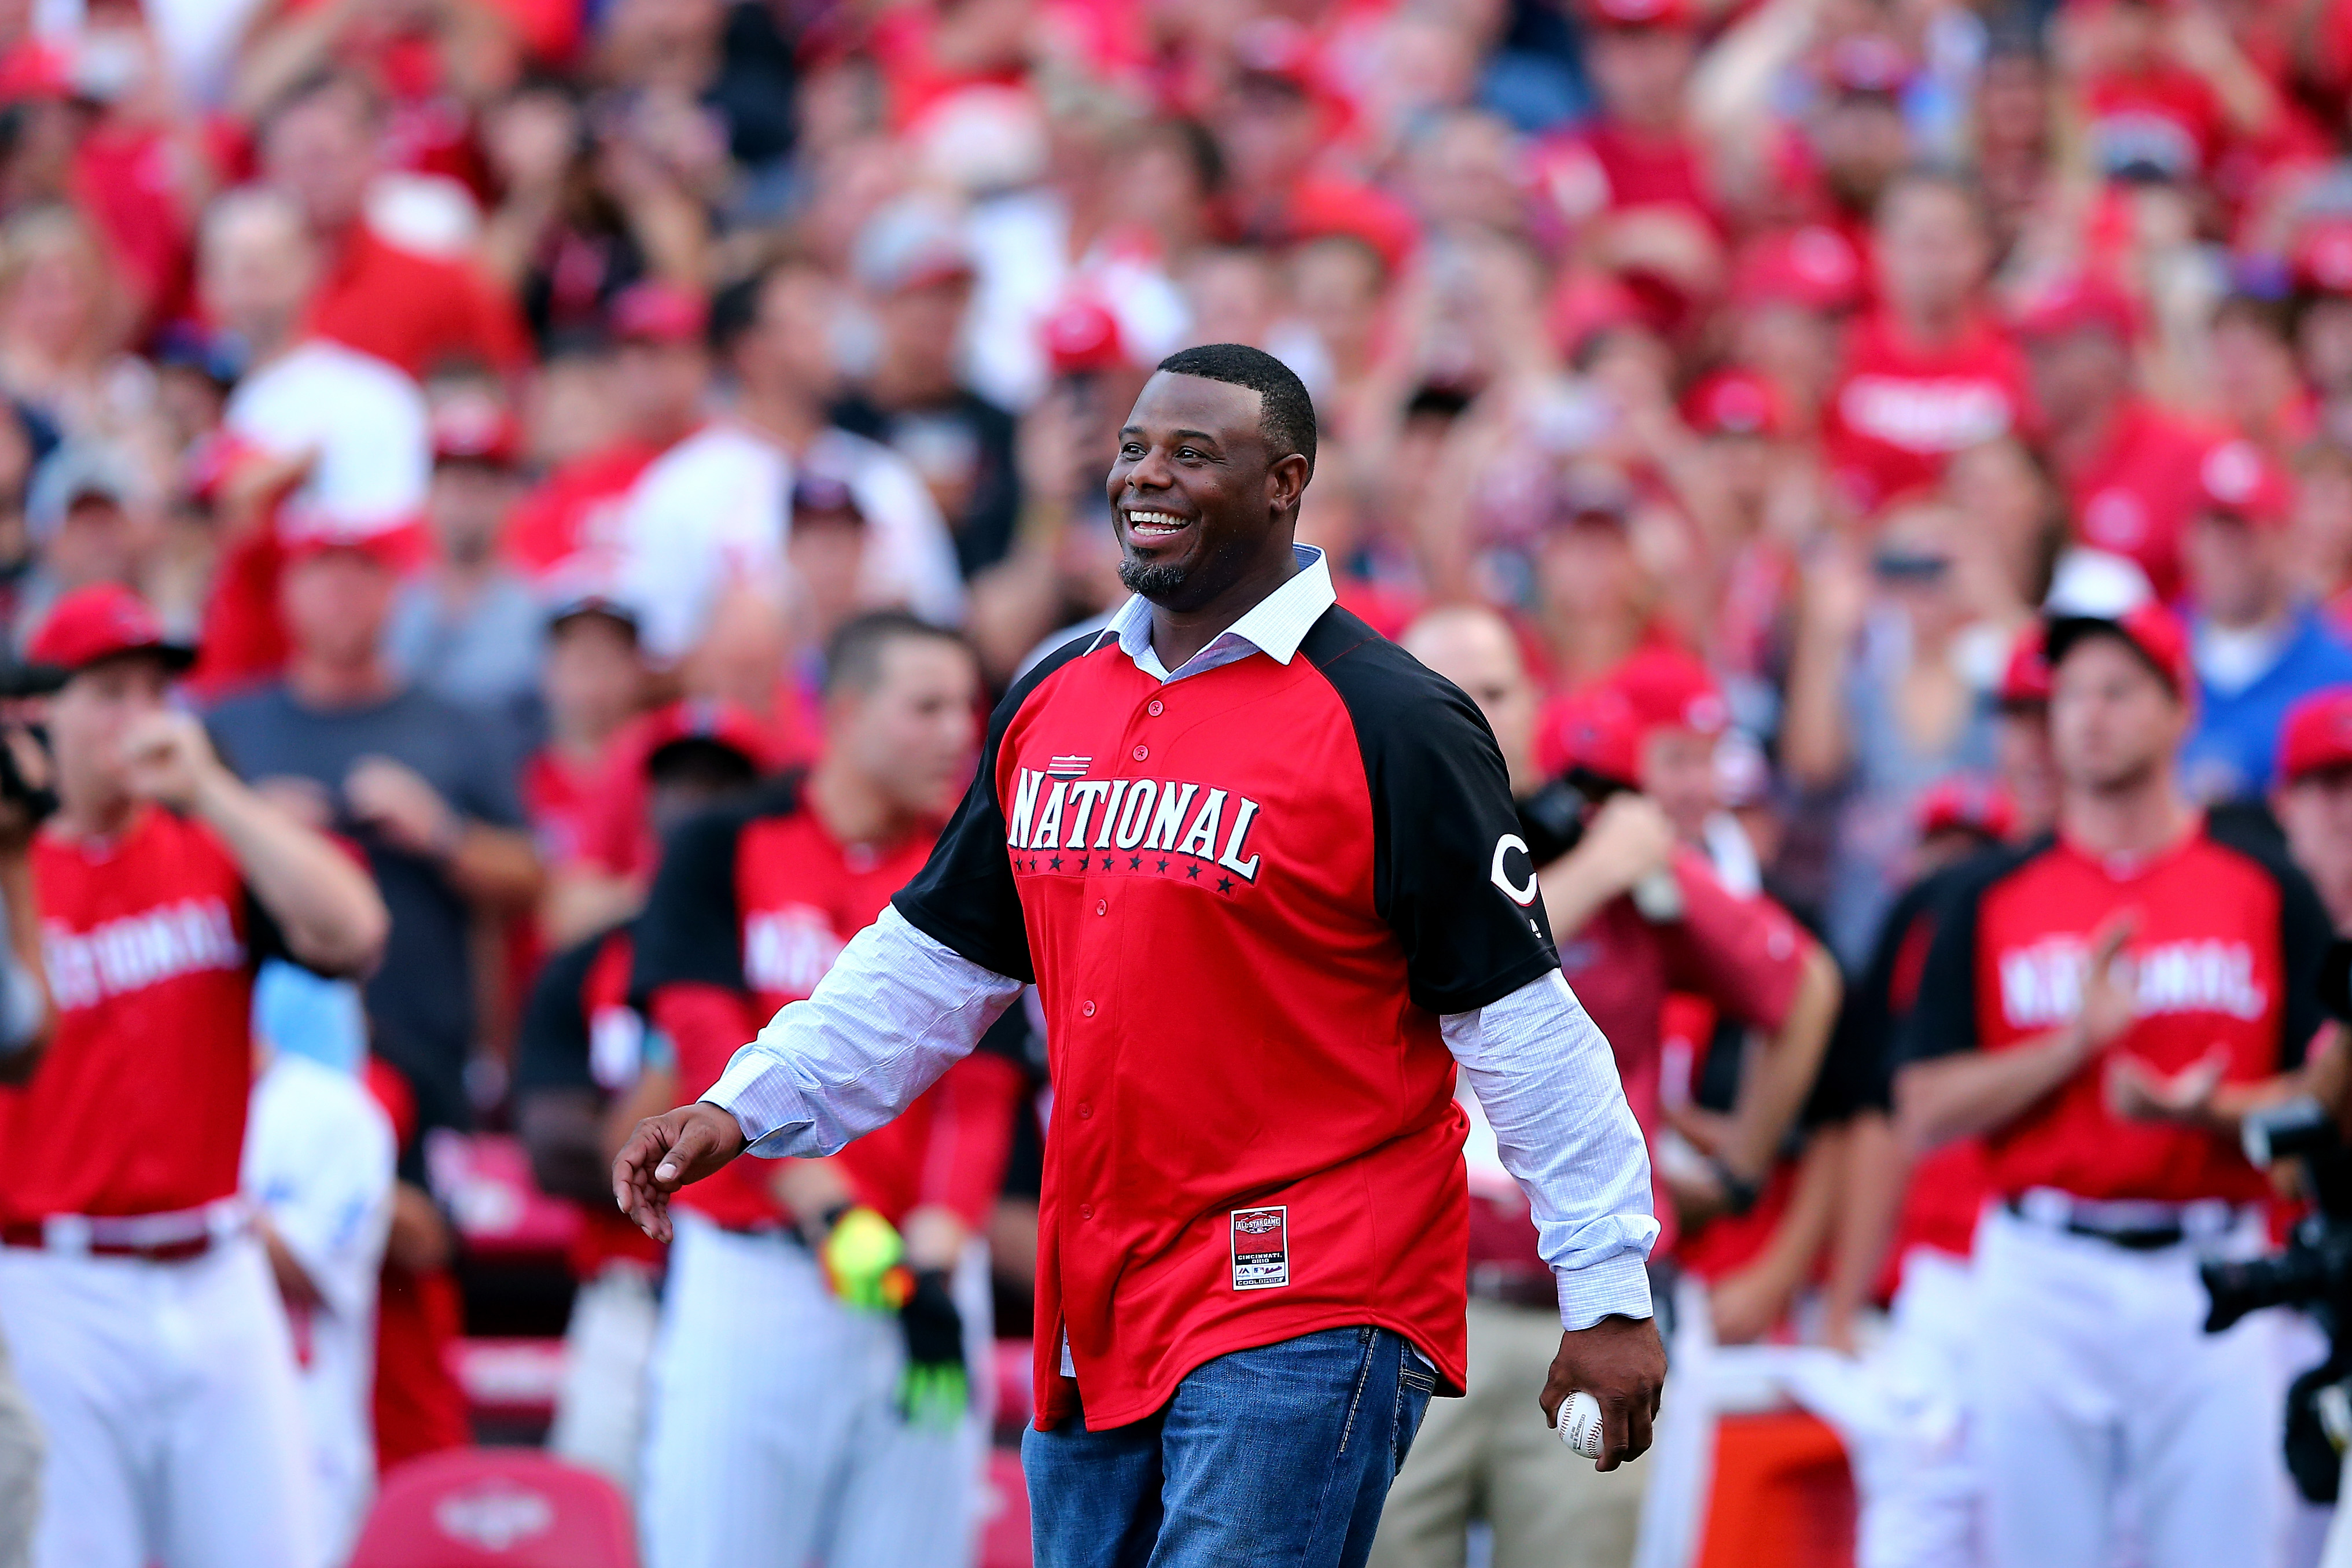 Ken Griffey Jr. walks out to throw the first pitch prior to the Gillette Home Run Derby presented by Head & Shoulders at the Great American Ball Park in Cincinnati on July 13, 2015.